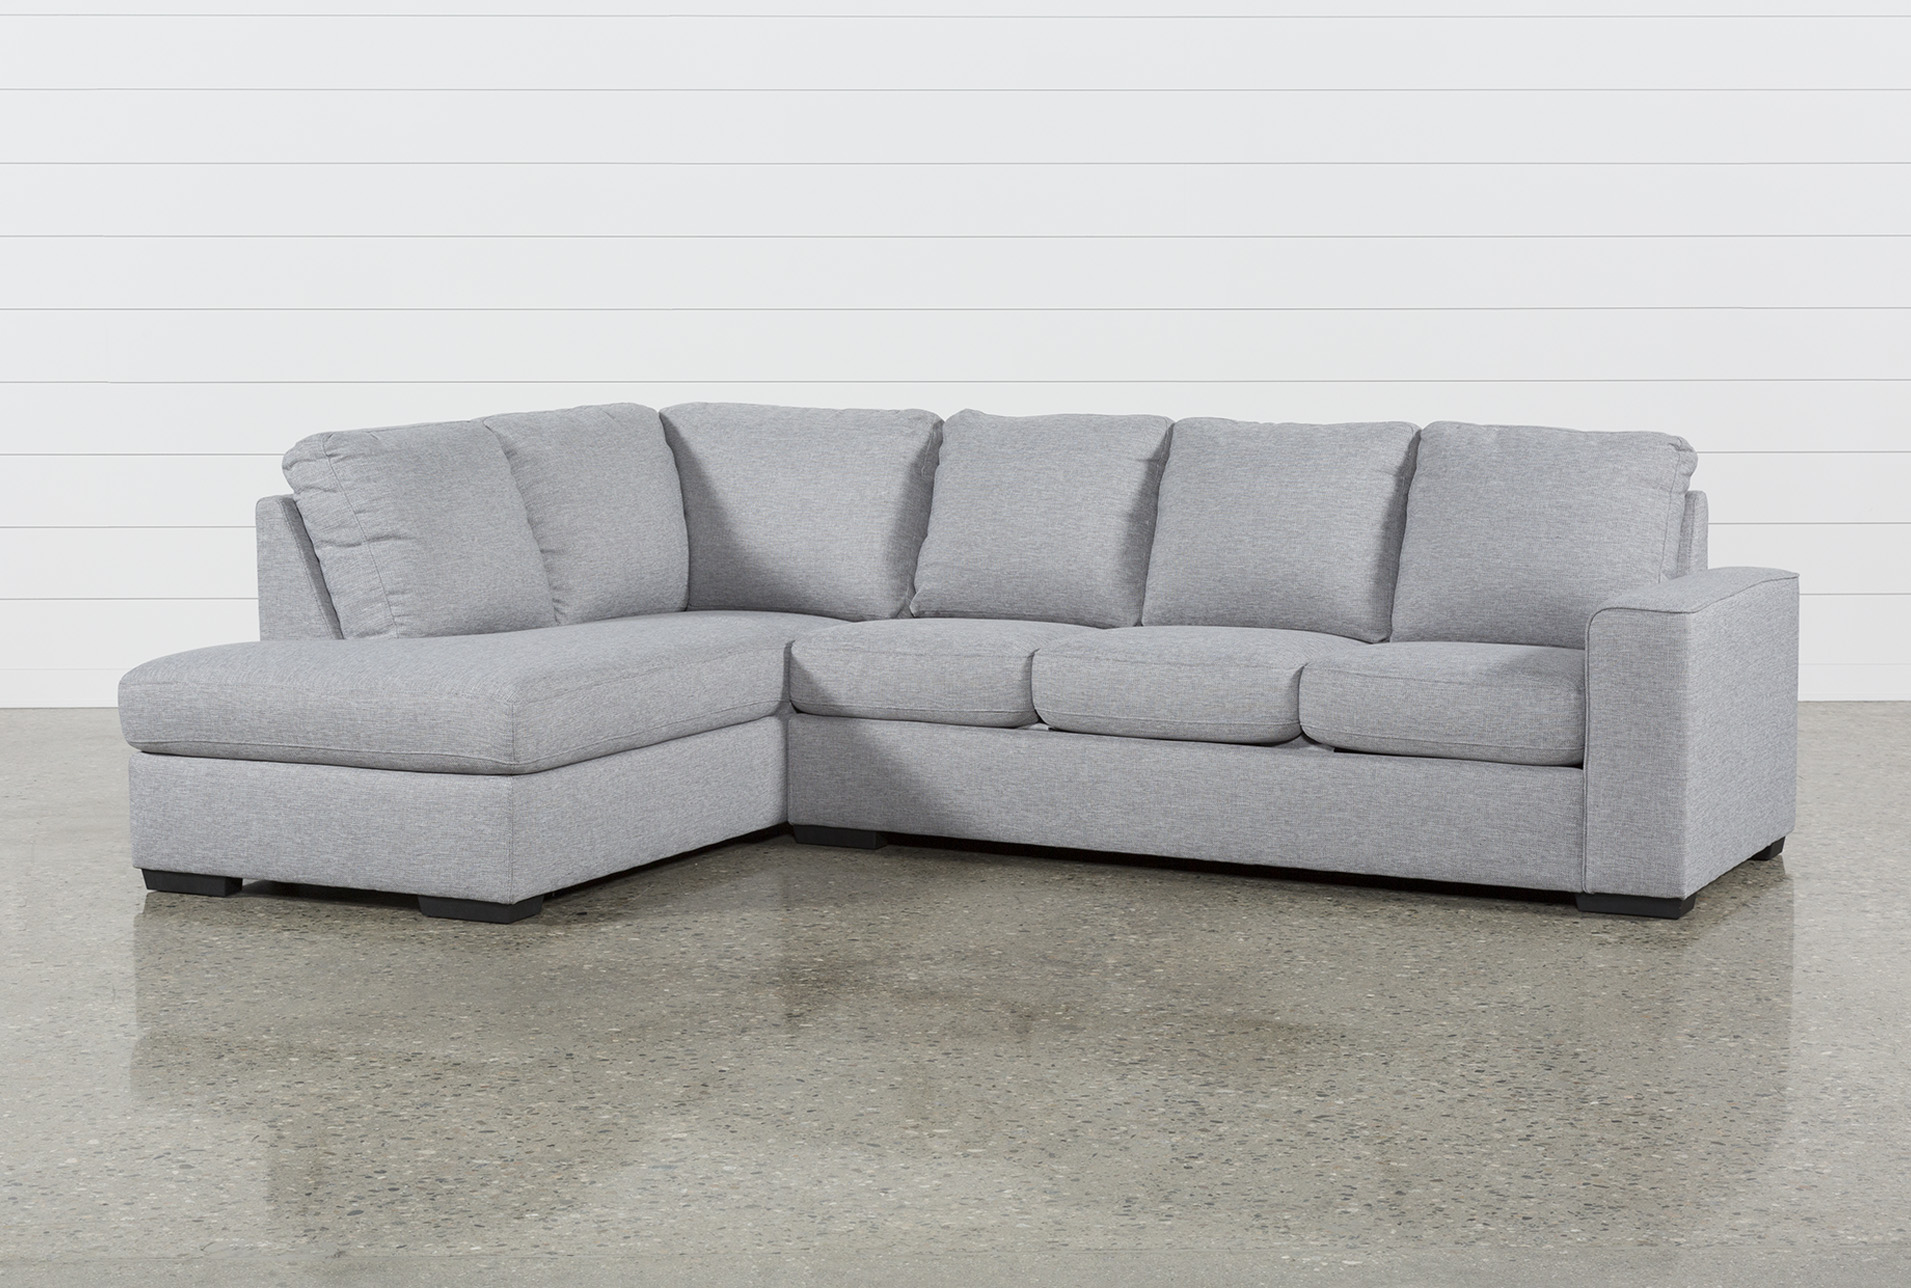 Lucy Grey 2 Piece Sectional W/Laf Chaise (Qty: 1) Has Been Successfully  Added To Your Cart.